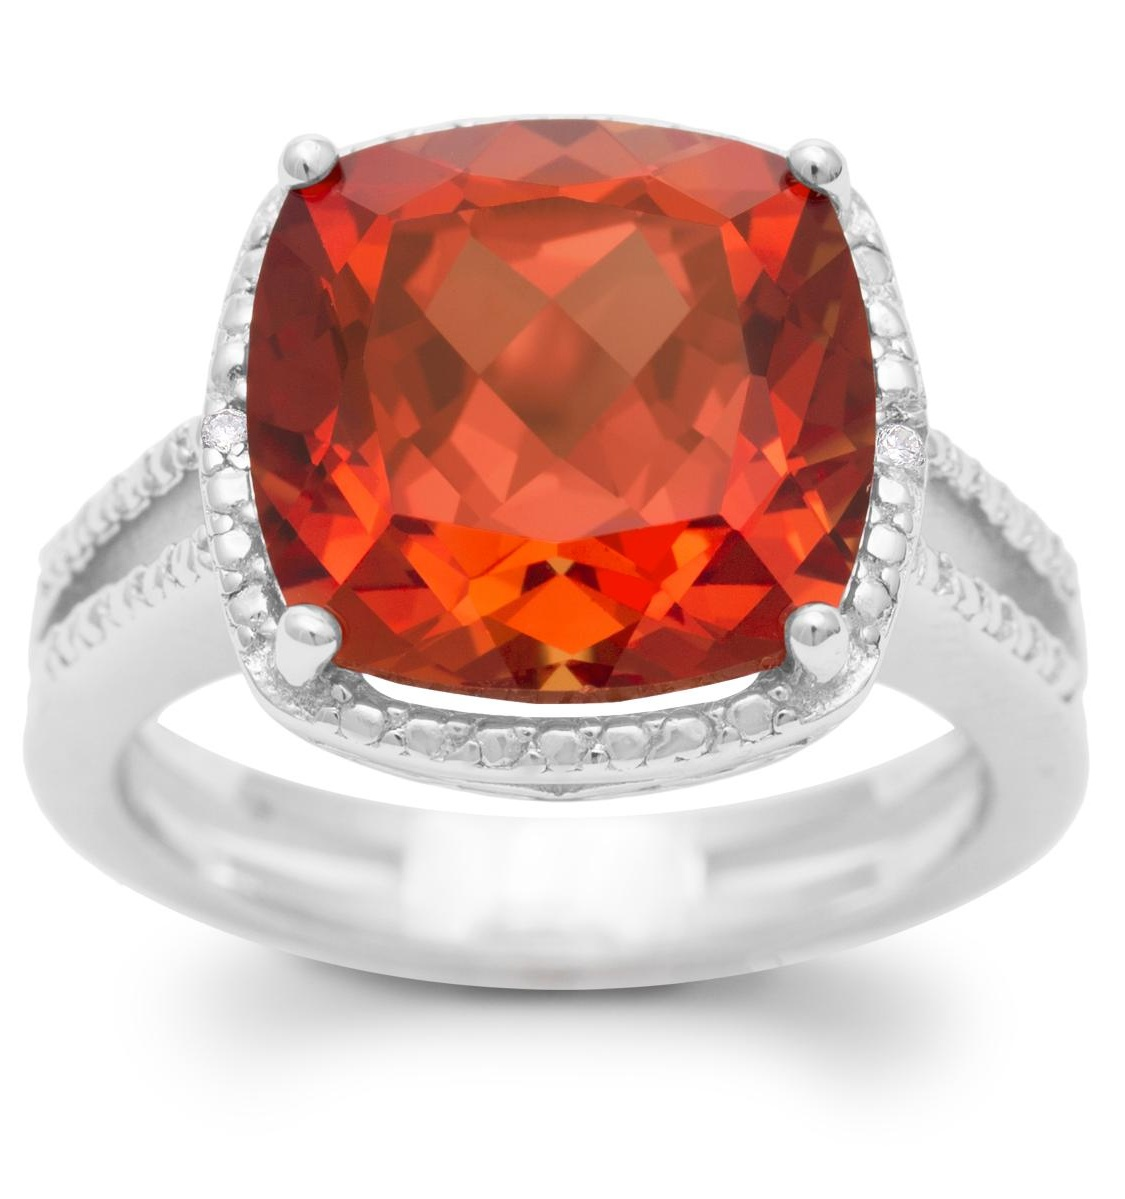 5 1/3 Carat Split Shank Cushion Cut Created Padparadscha Sapphire and Diamond Ring In Sterling Silver - 4